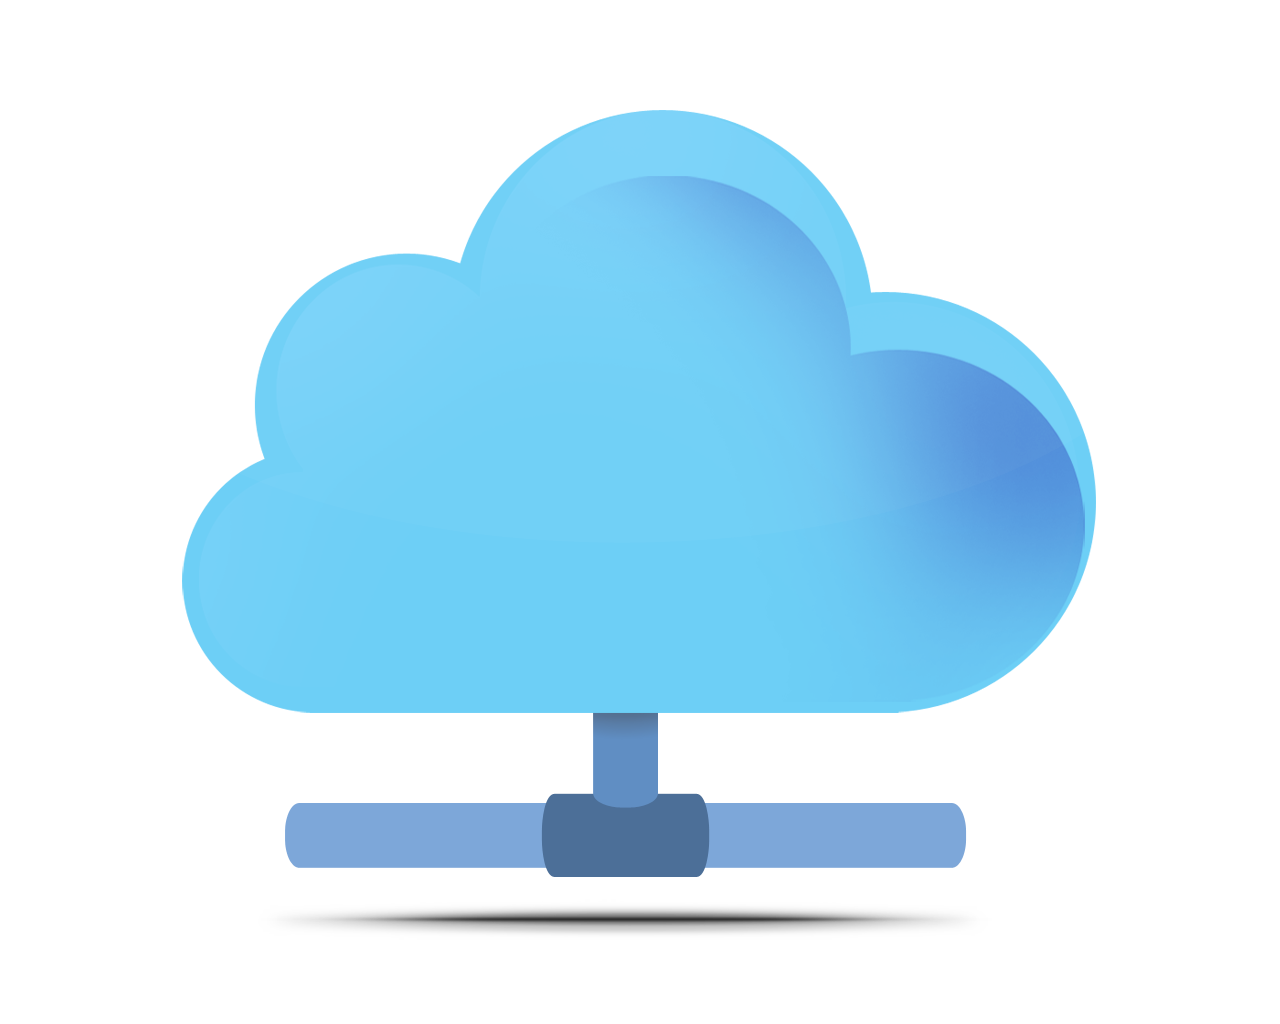 Free Cloud Hosting Cliparts, Download Free Clip Art, Free.